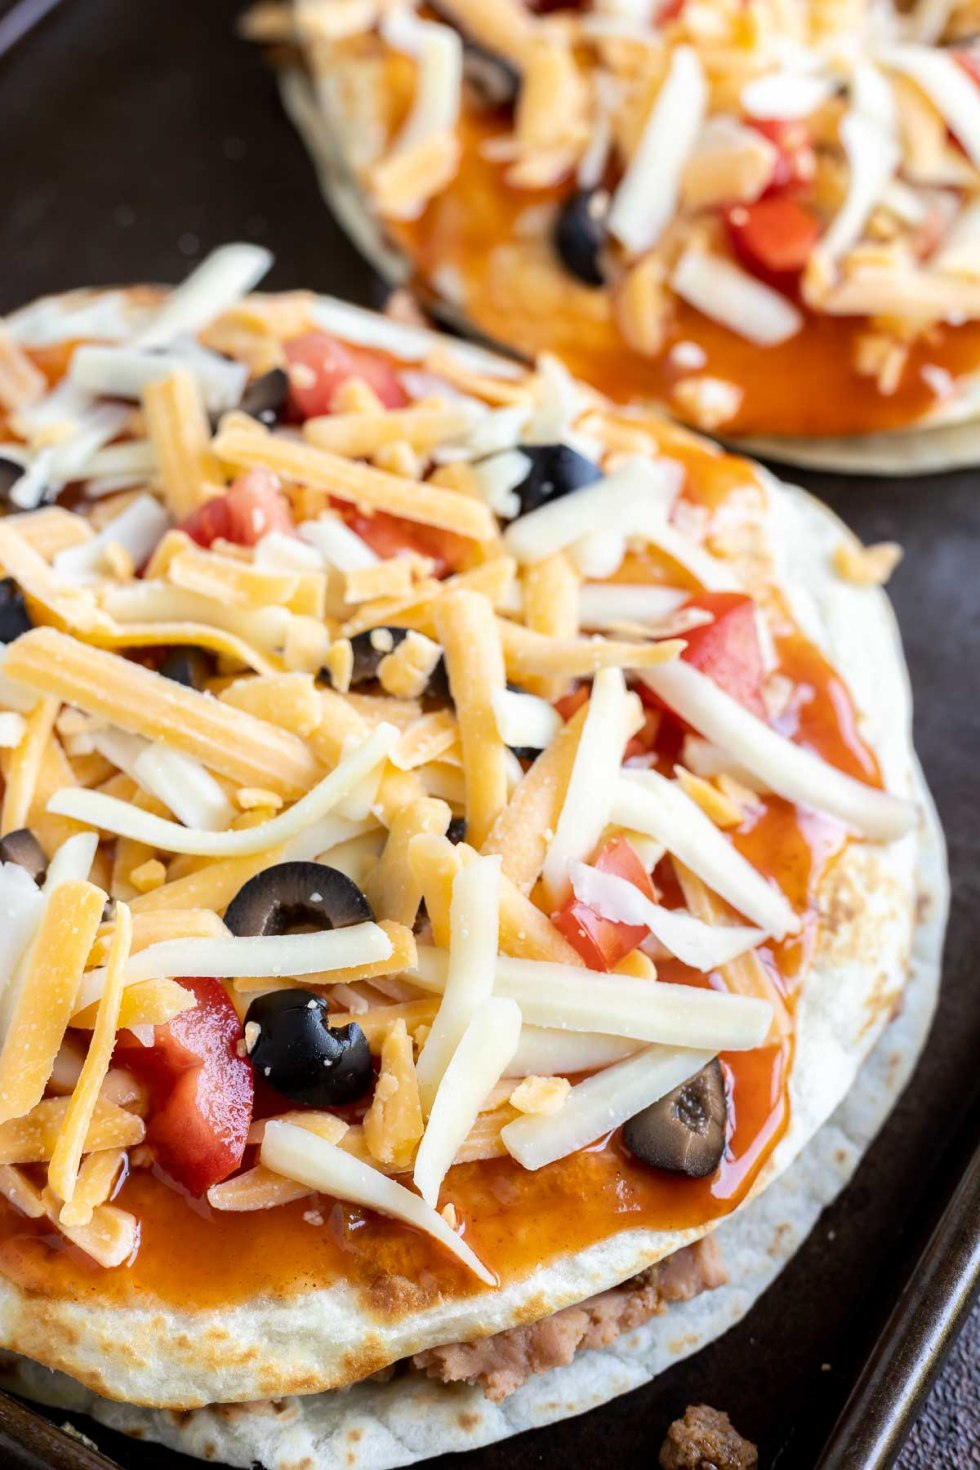 assembled Mexican pizza prior to being baked